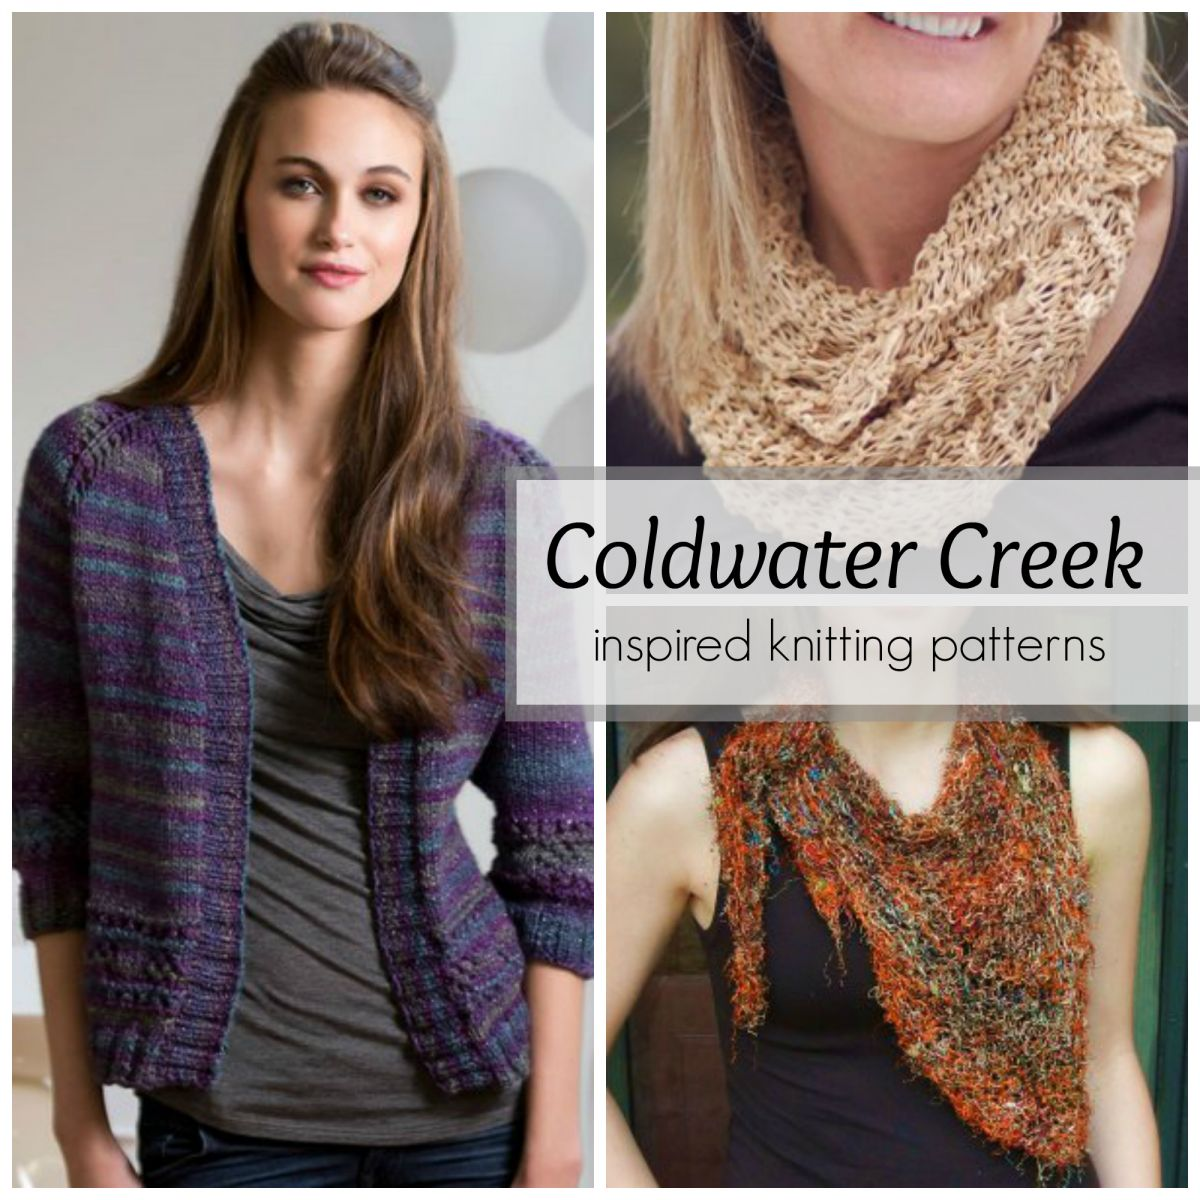 Coldwater Creek Inspired Knitting Patterns